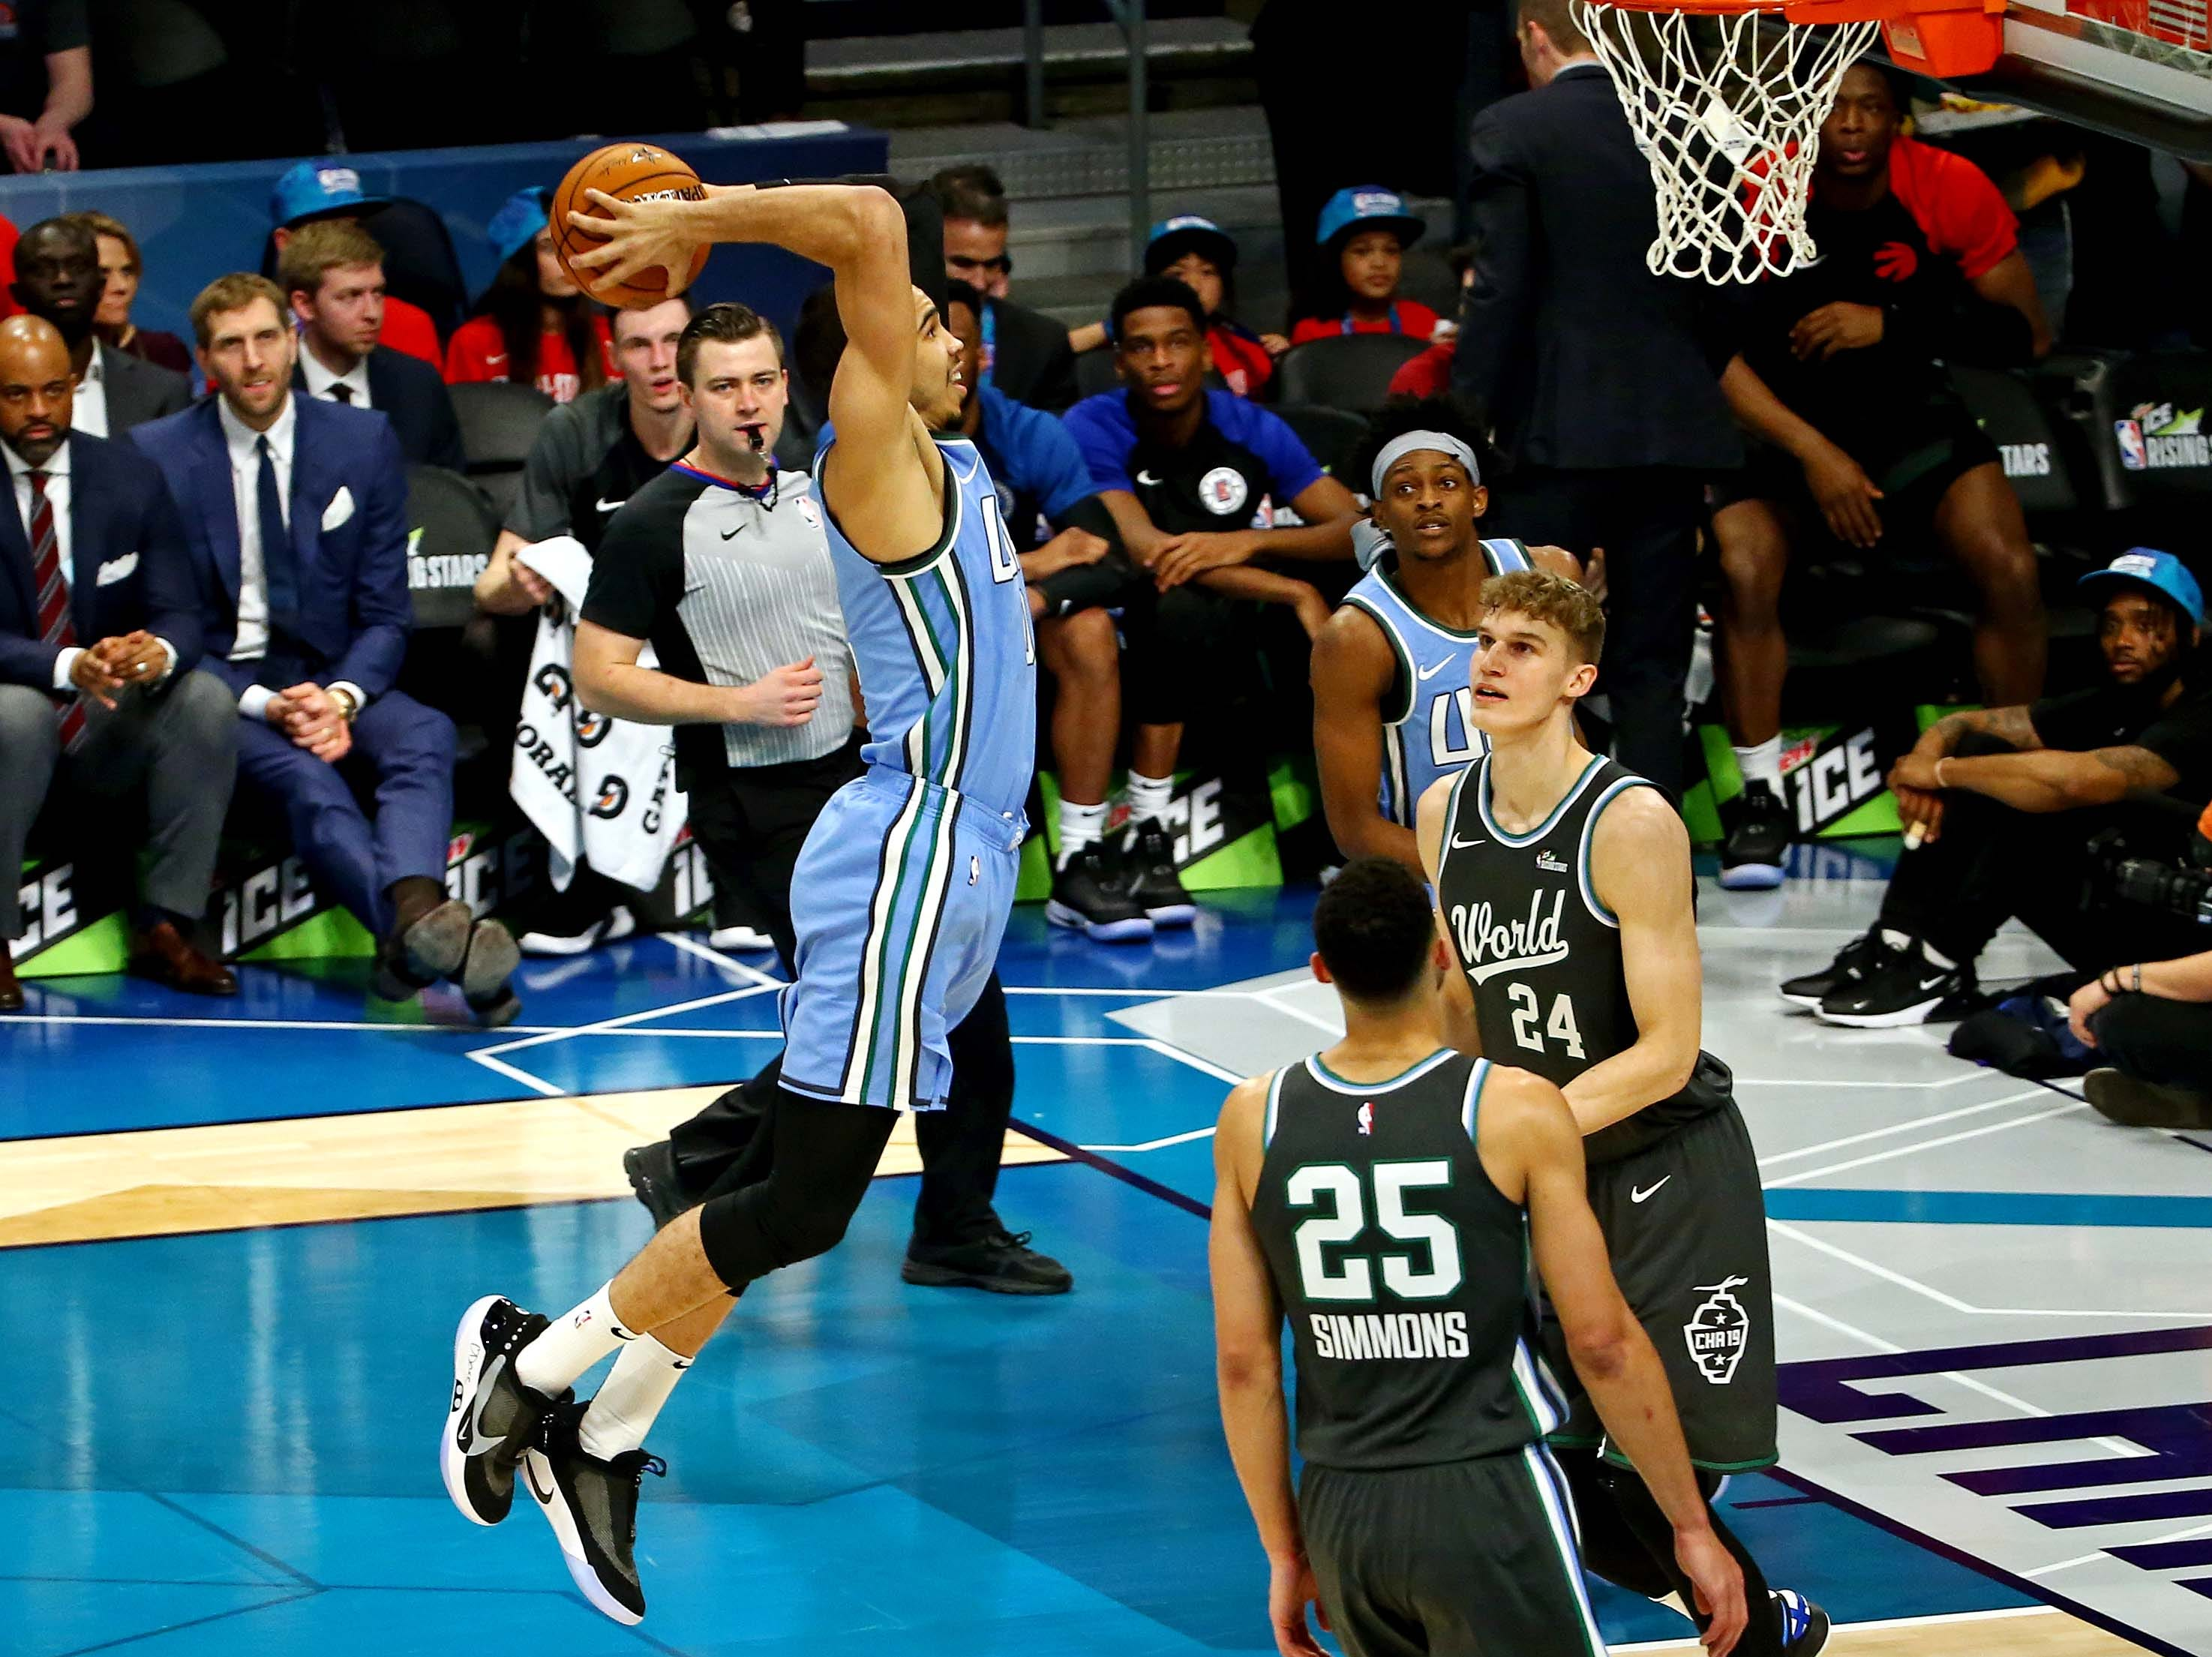 U.S. Team forward Jayson Tatum of the Boston Celtics dunks the ball during the All-Star Rising Stars game.